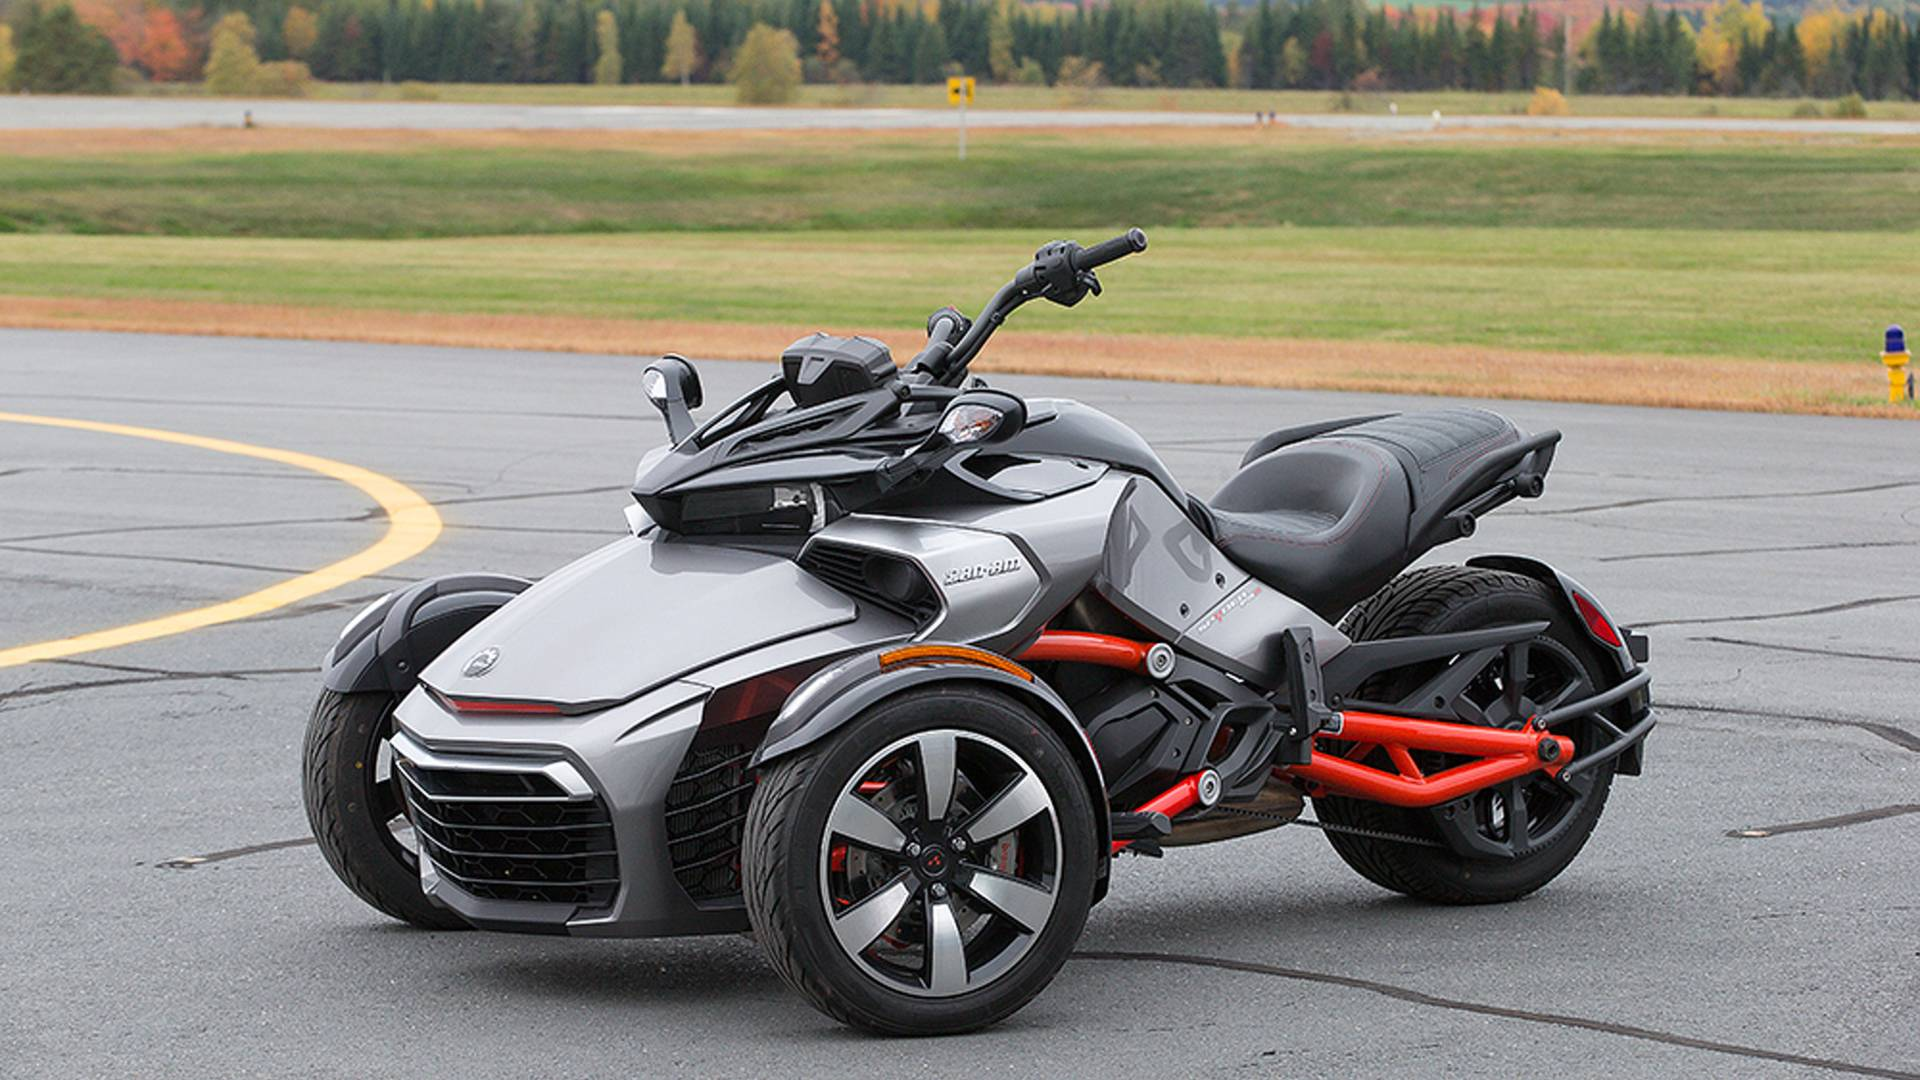 Can Am Spyder News And Reviews Rideapart Com